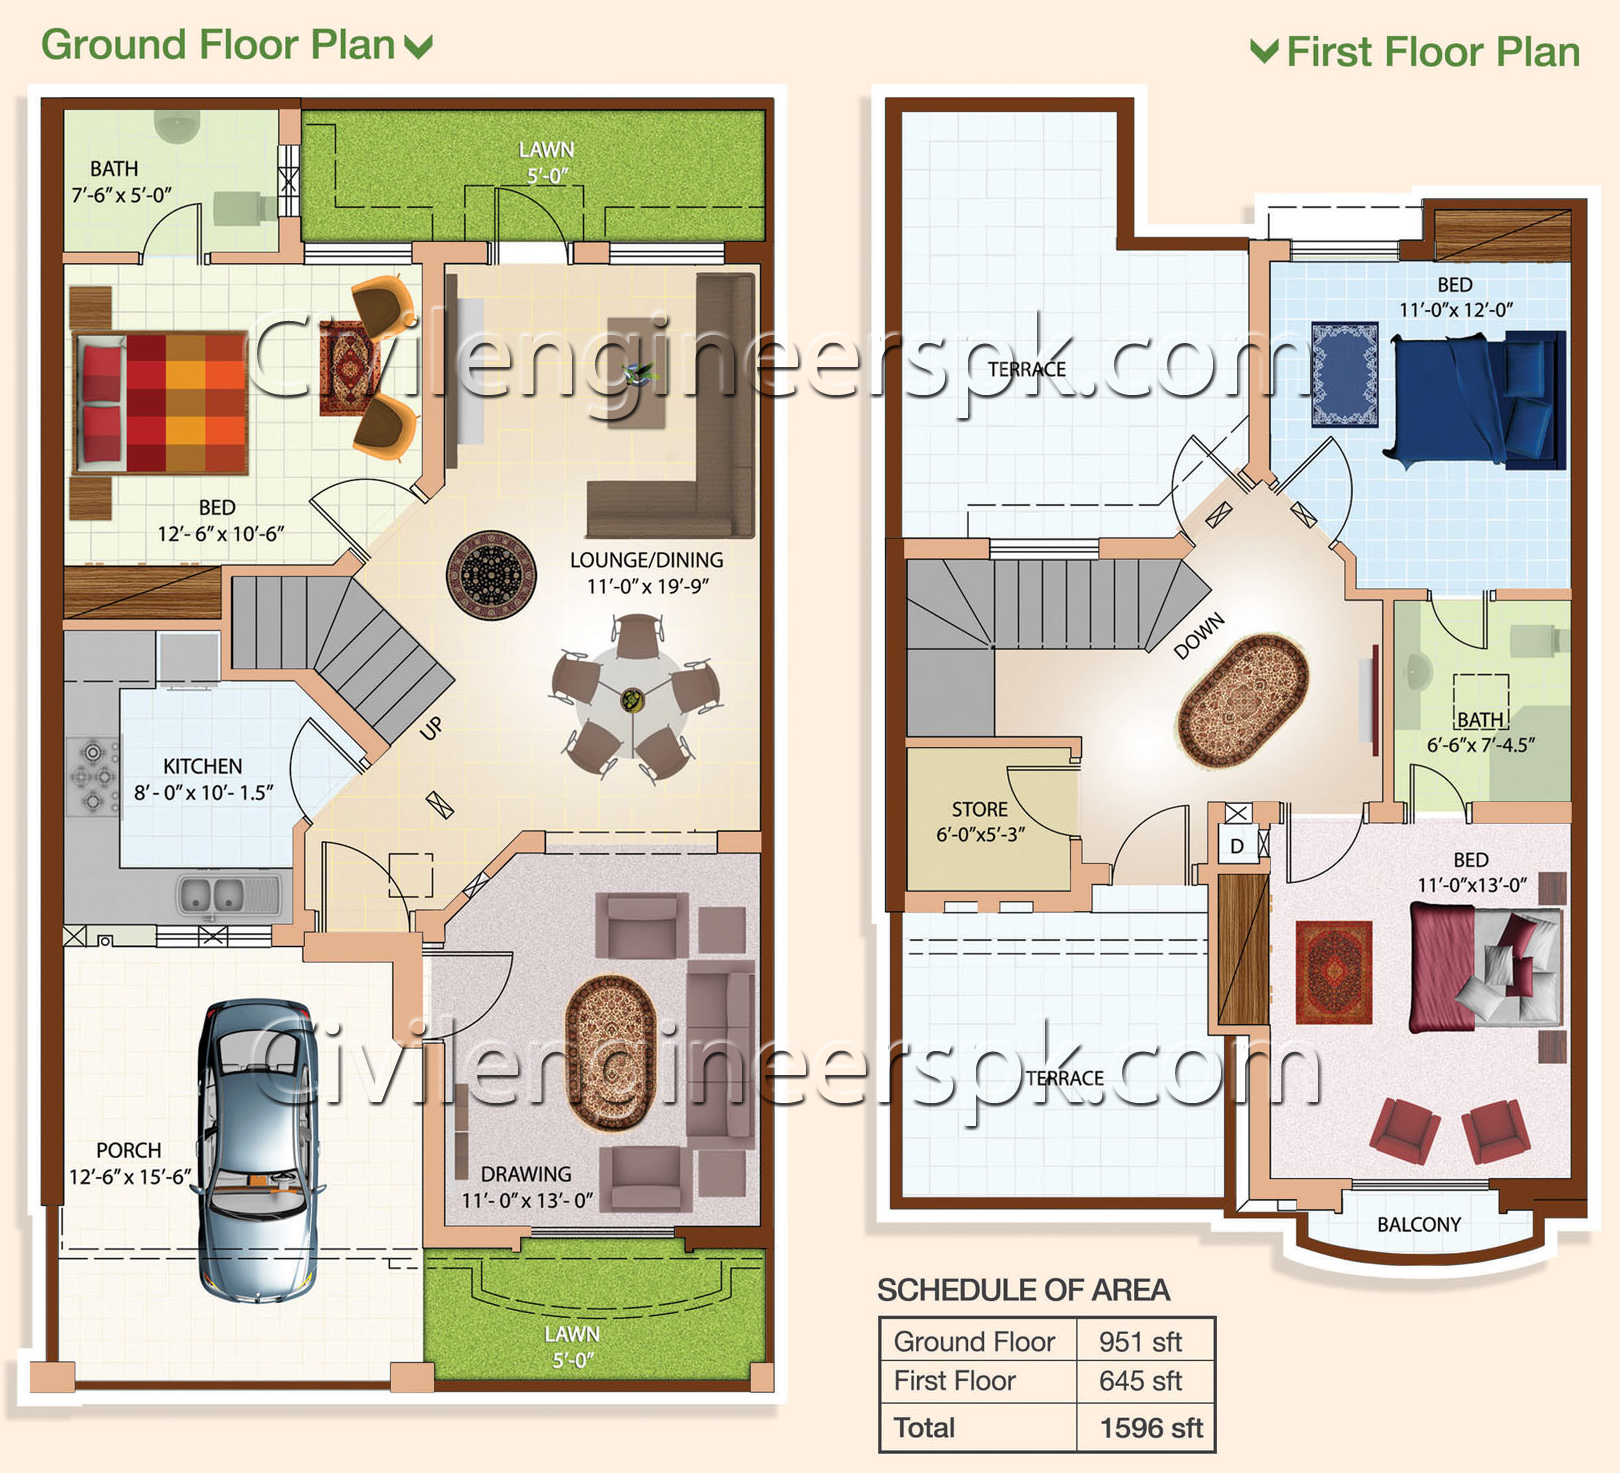 5 marla house plan civil engineers pk Construction cost of 5 marla house